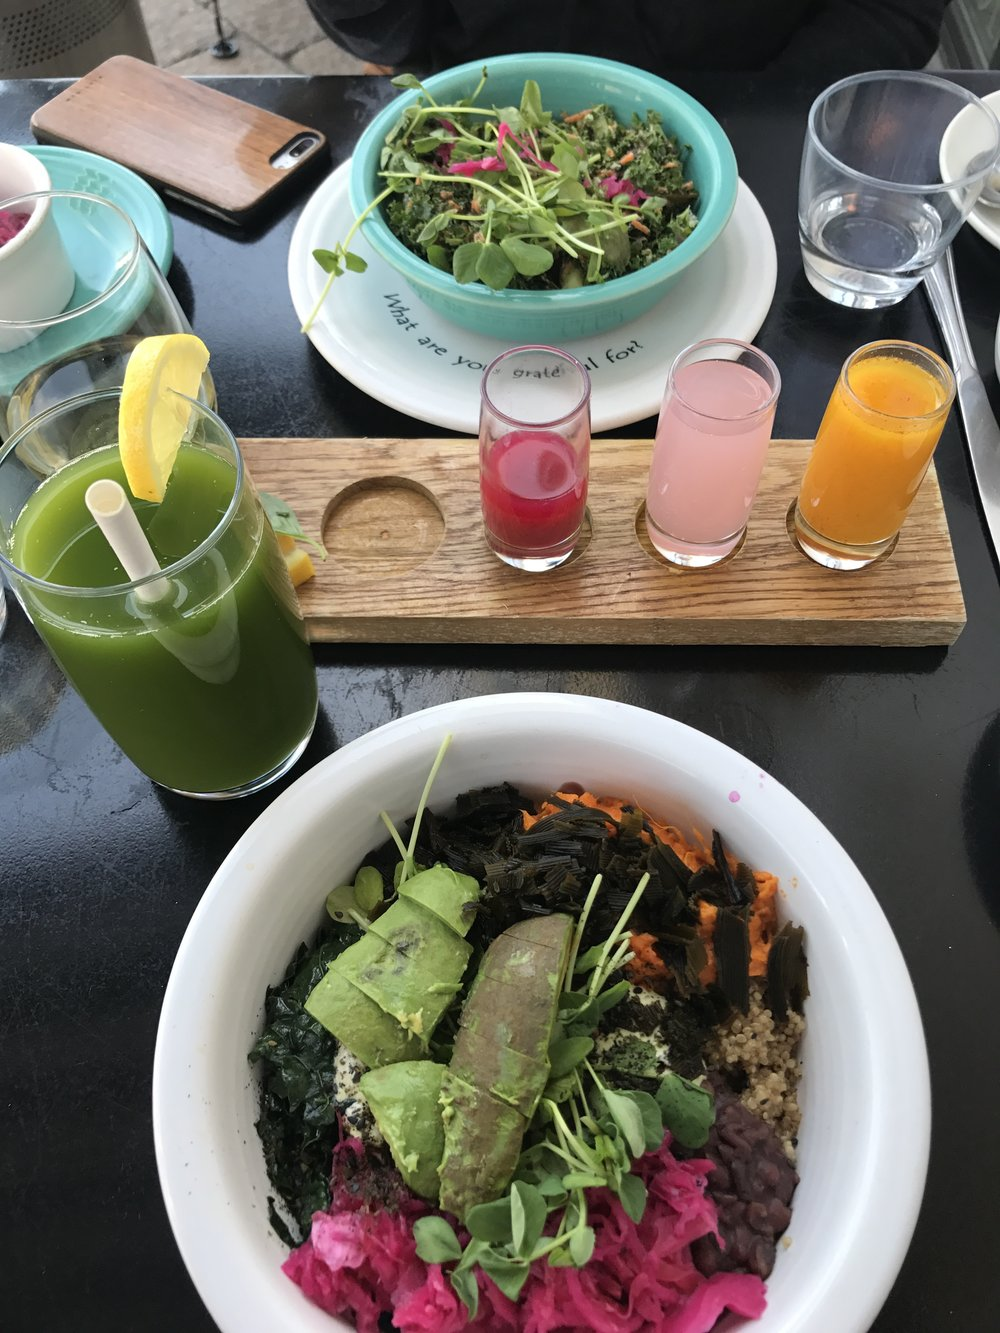 Whole bowl. Replenished pressed juice. Wellness flight.